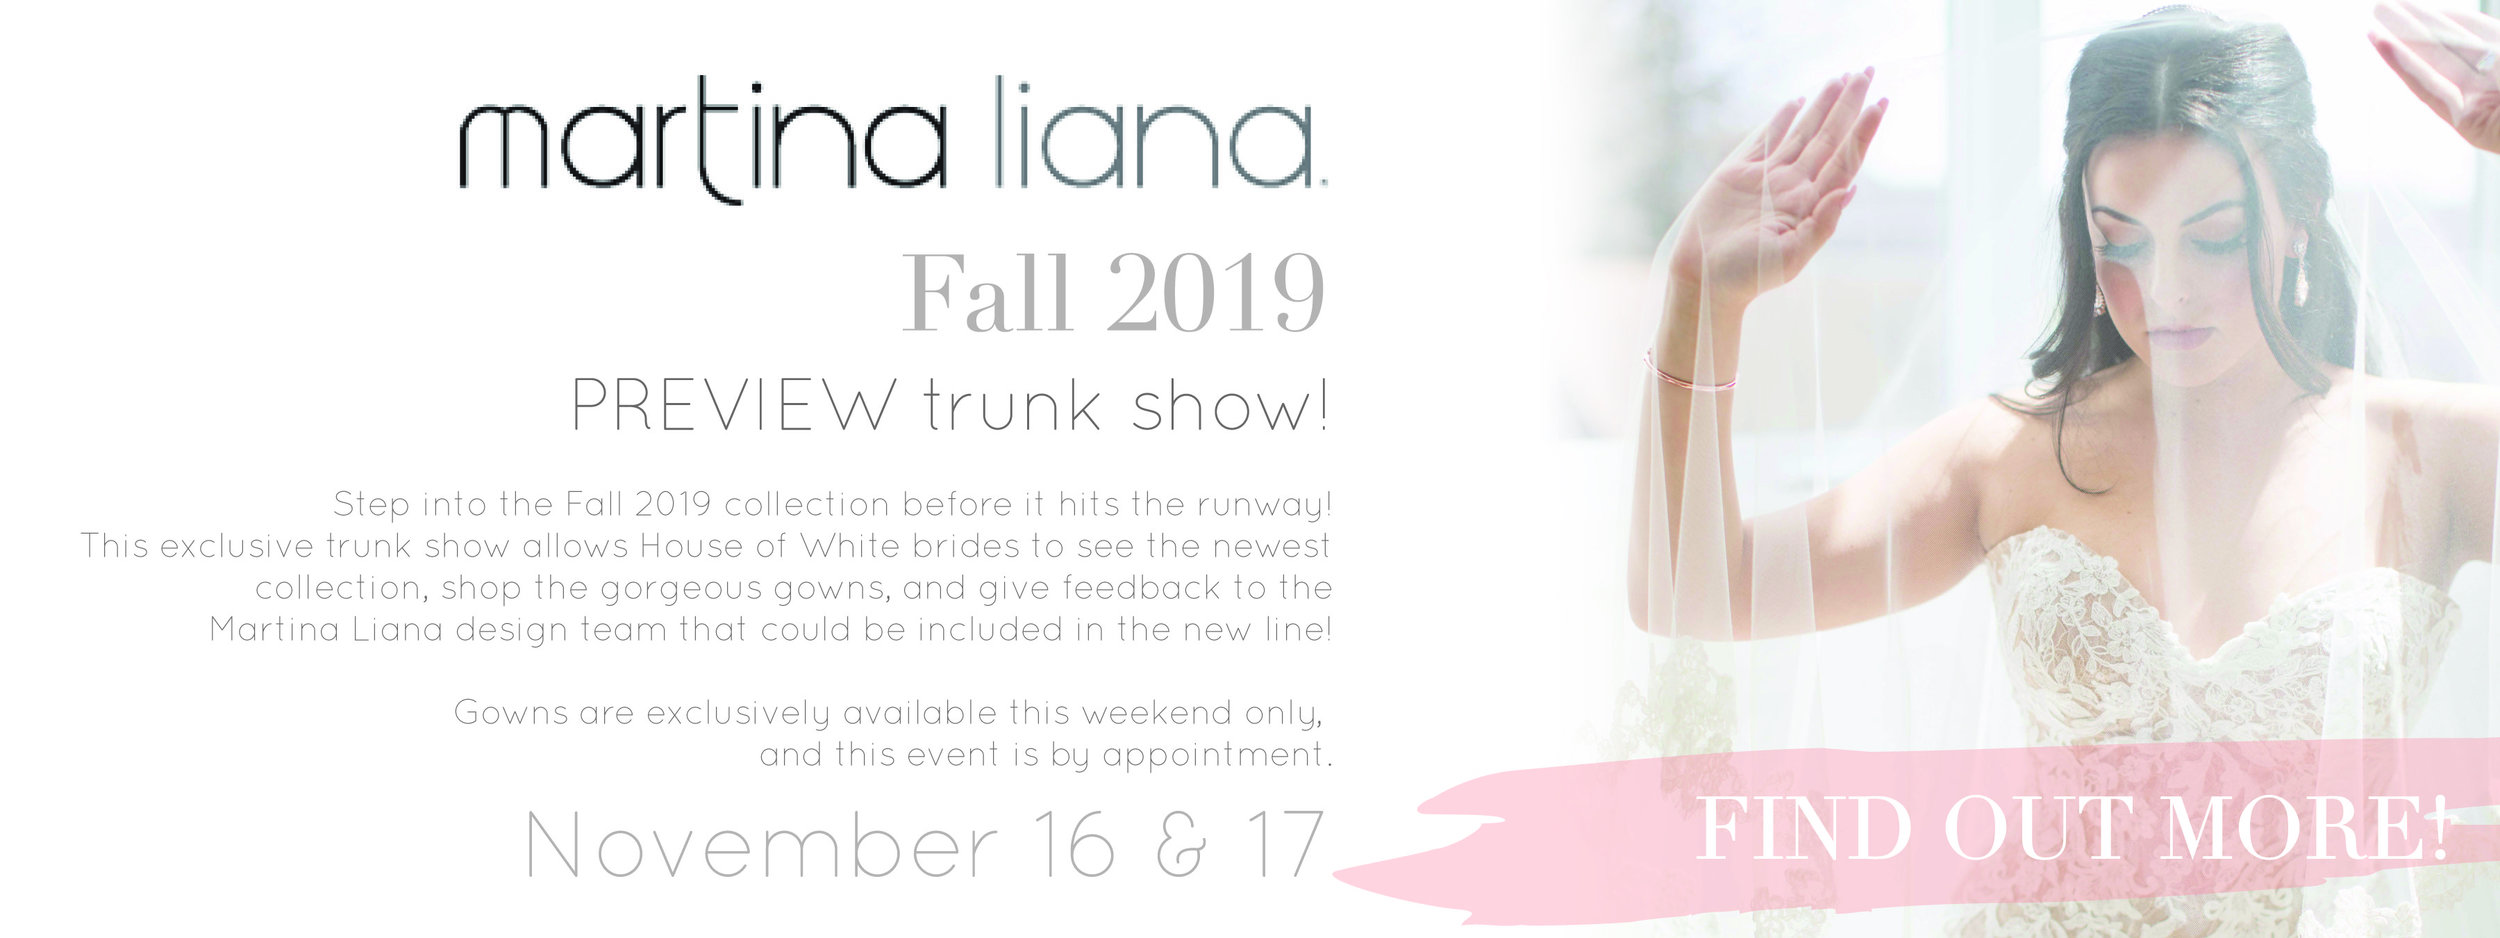 2019 Preview Trunk Show homepage slide.jpg